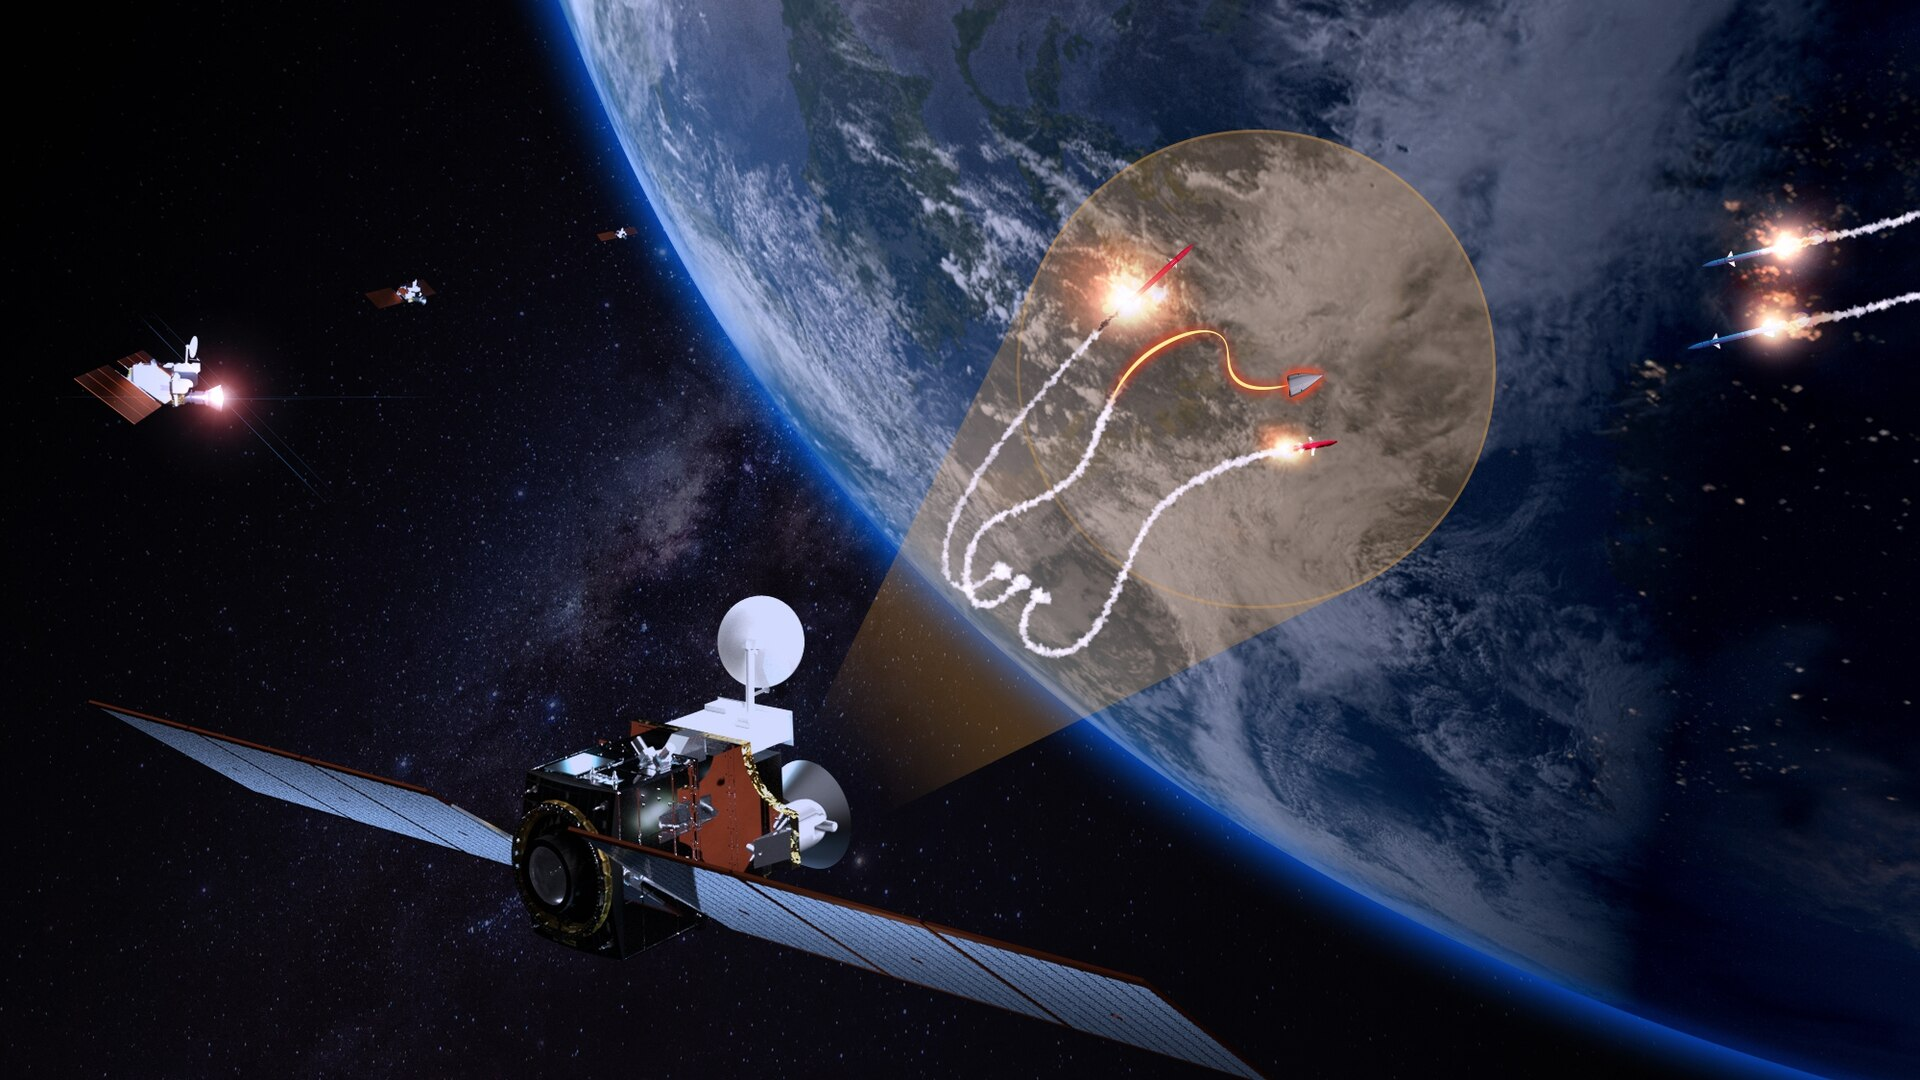 An artist's depiction of L3Harris' tracking layer satellite, which will be part of a solution designed by the Space Development Agency and the Missile Defense Agency to track and target hypersonic weapons from space. (L3Harris)